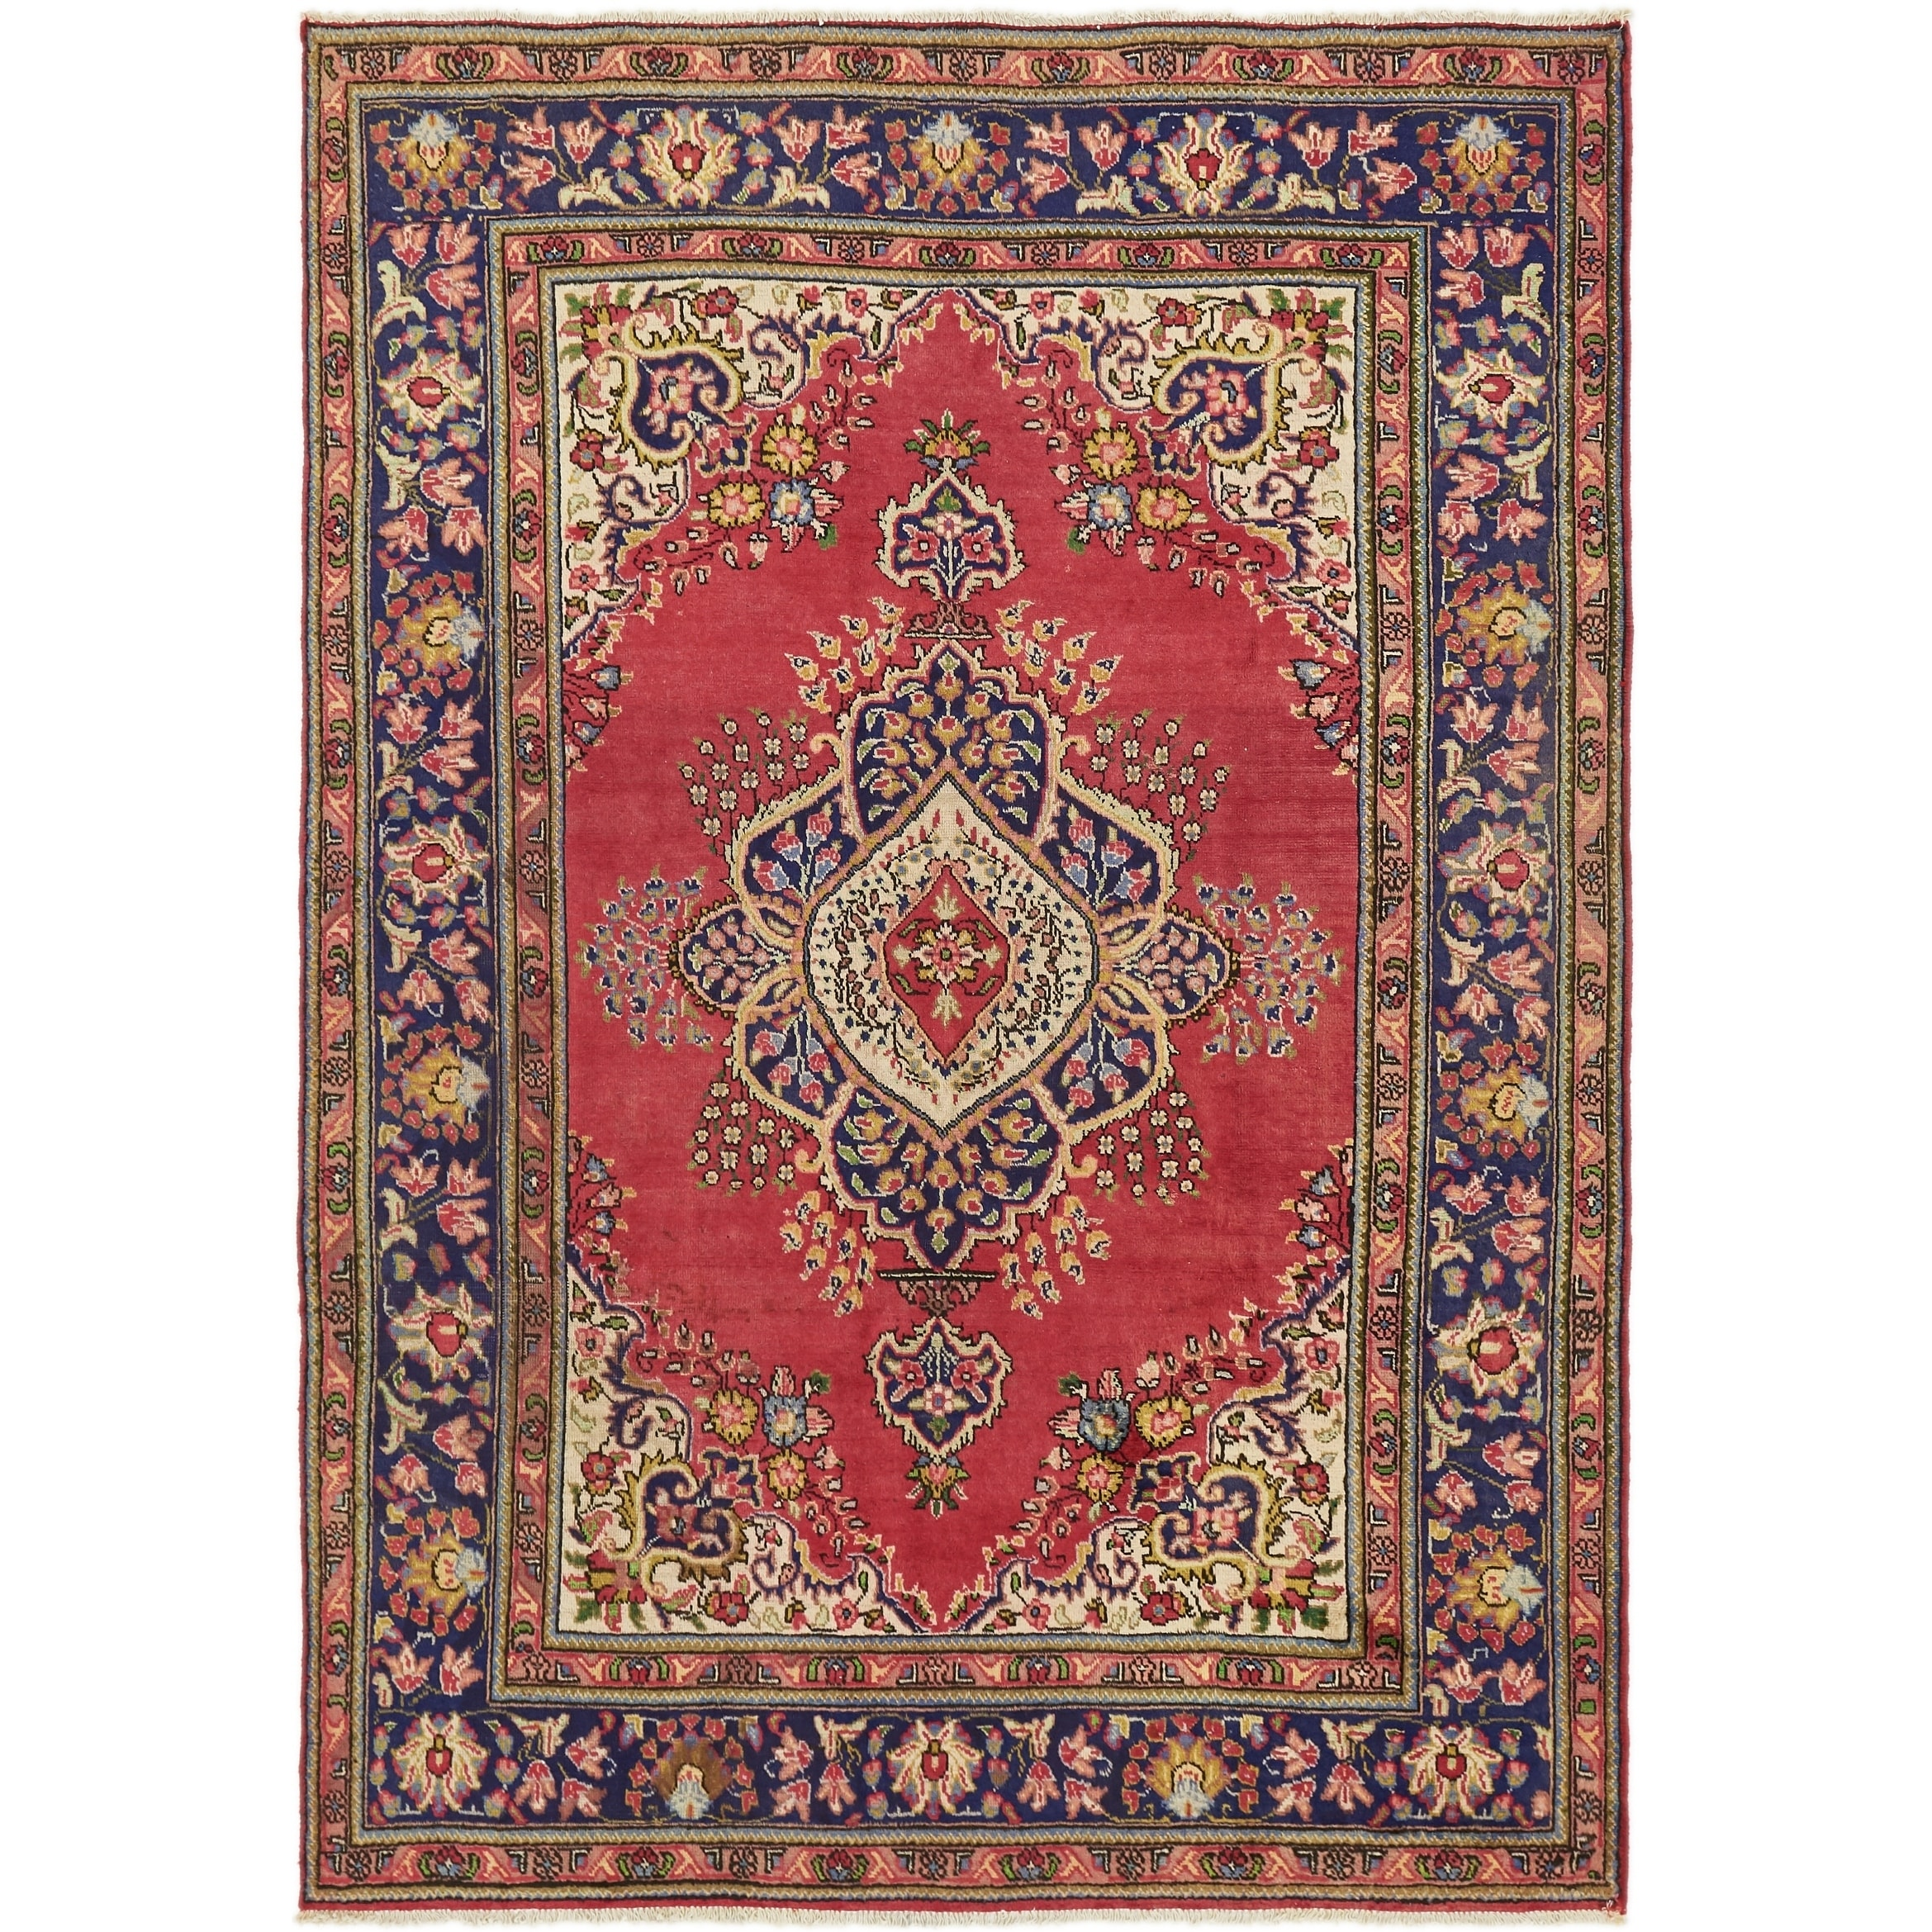 Hand Knotted Tabriz Semi Antique Wool Area Rug - 6' 7 x 9' 6